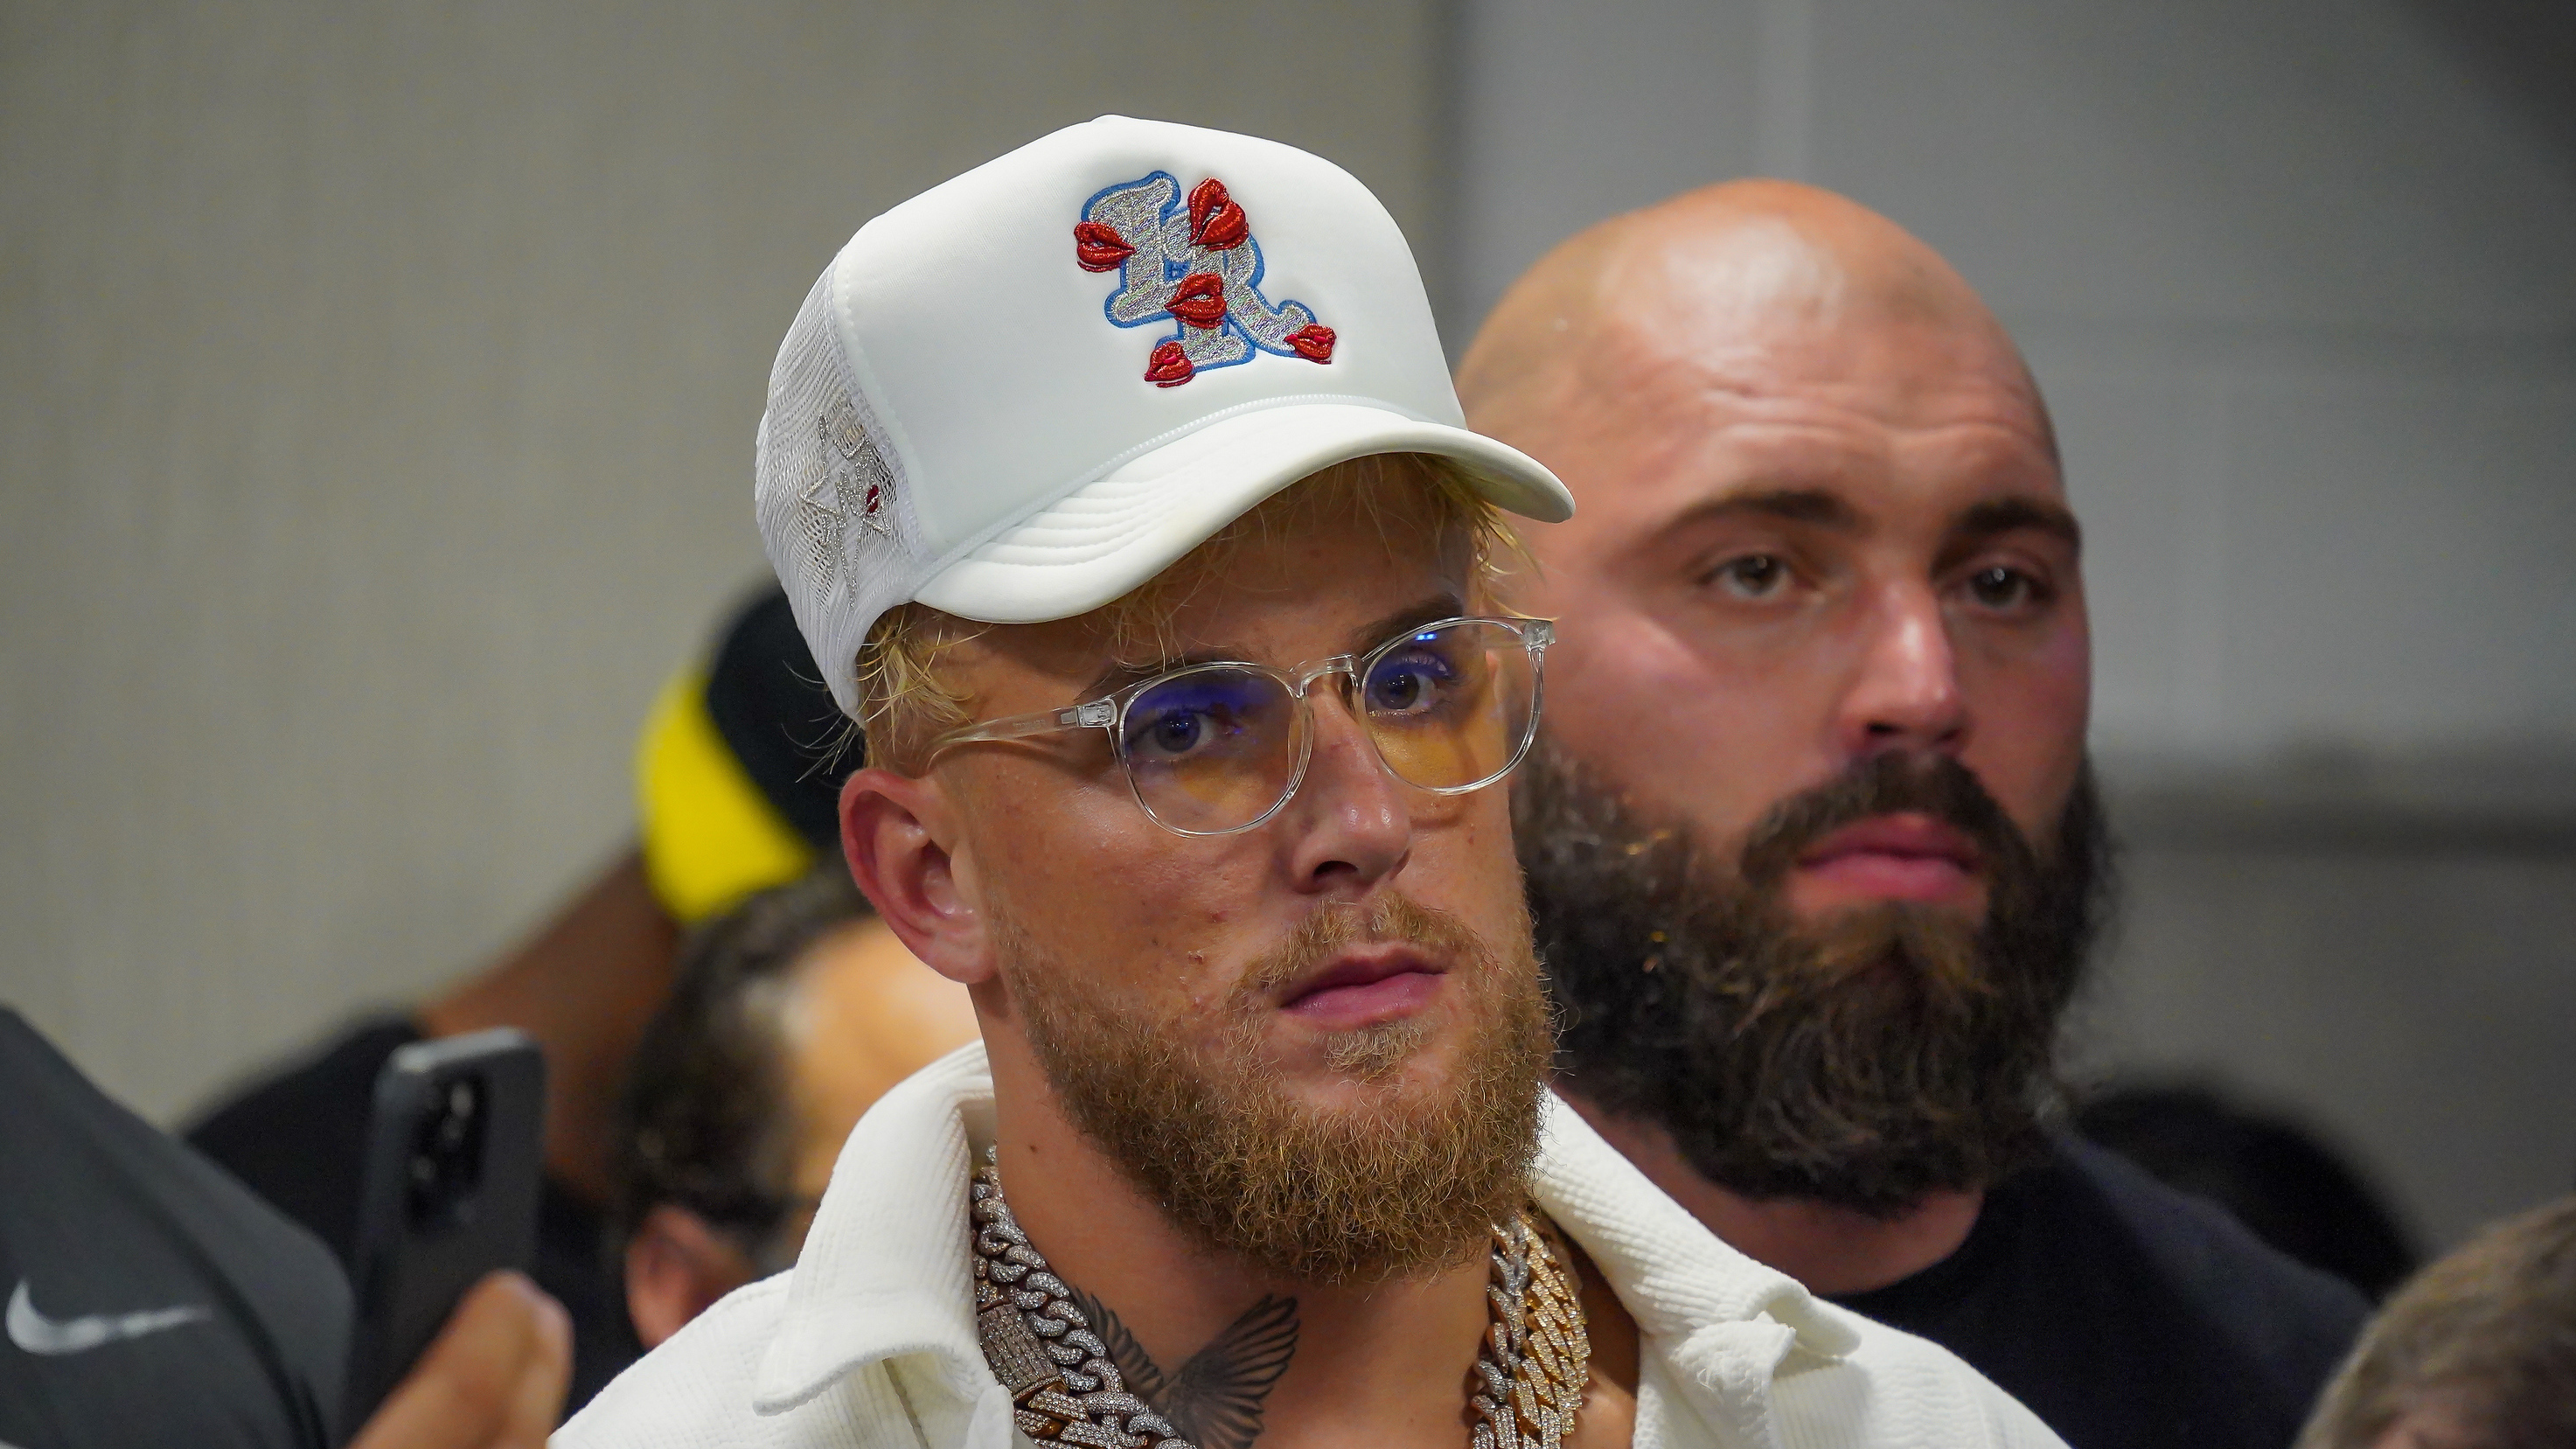 Jake Paul Confirms He Will Have Tattoo Artist At Tyron Woodley Fight To Tattoo Winner's Name On Loser